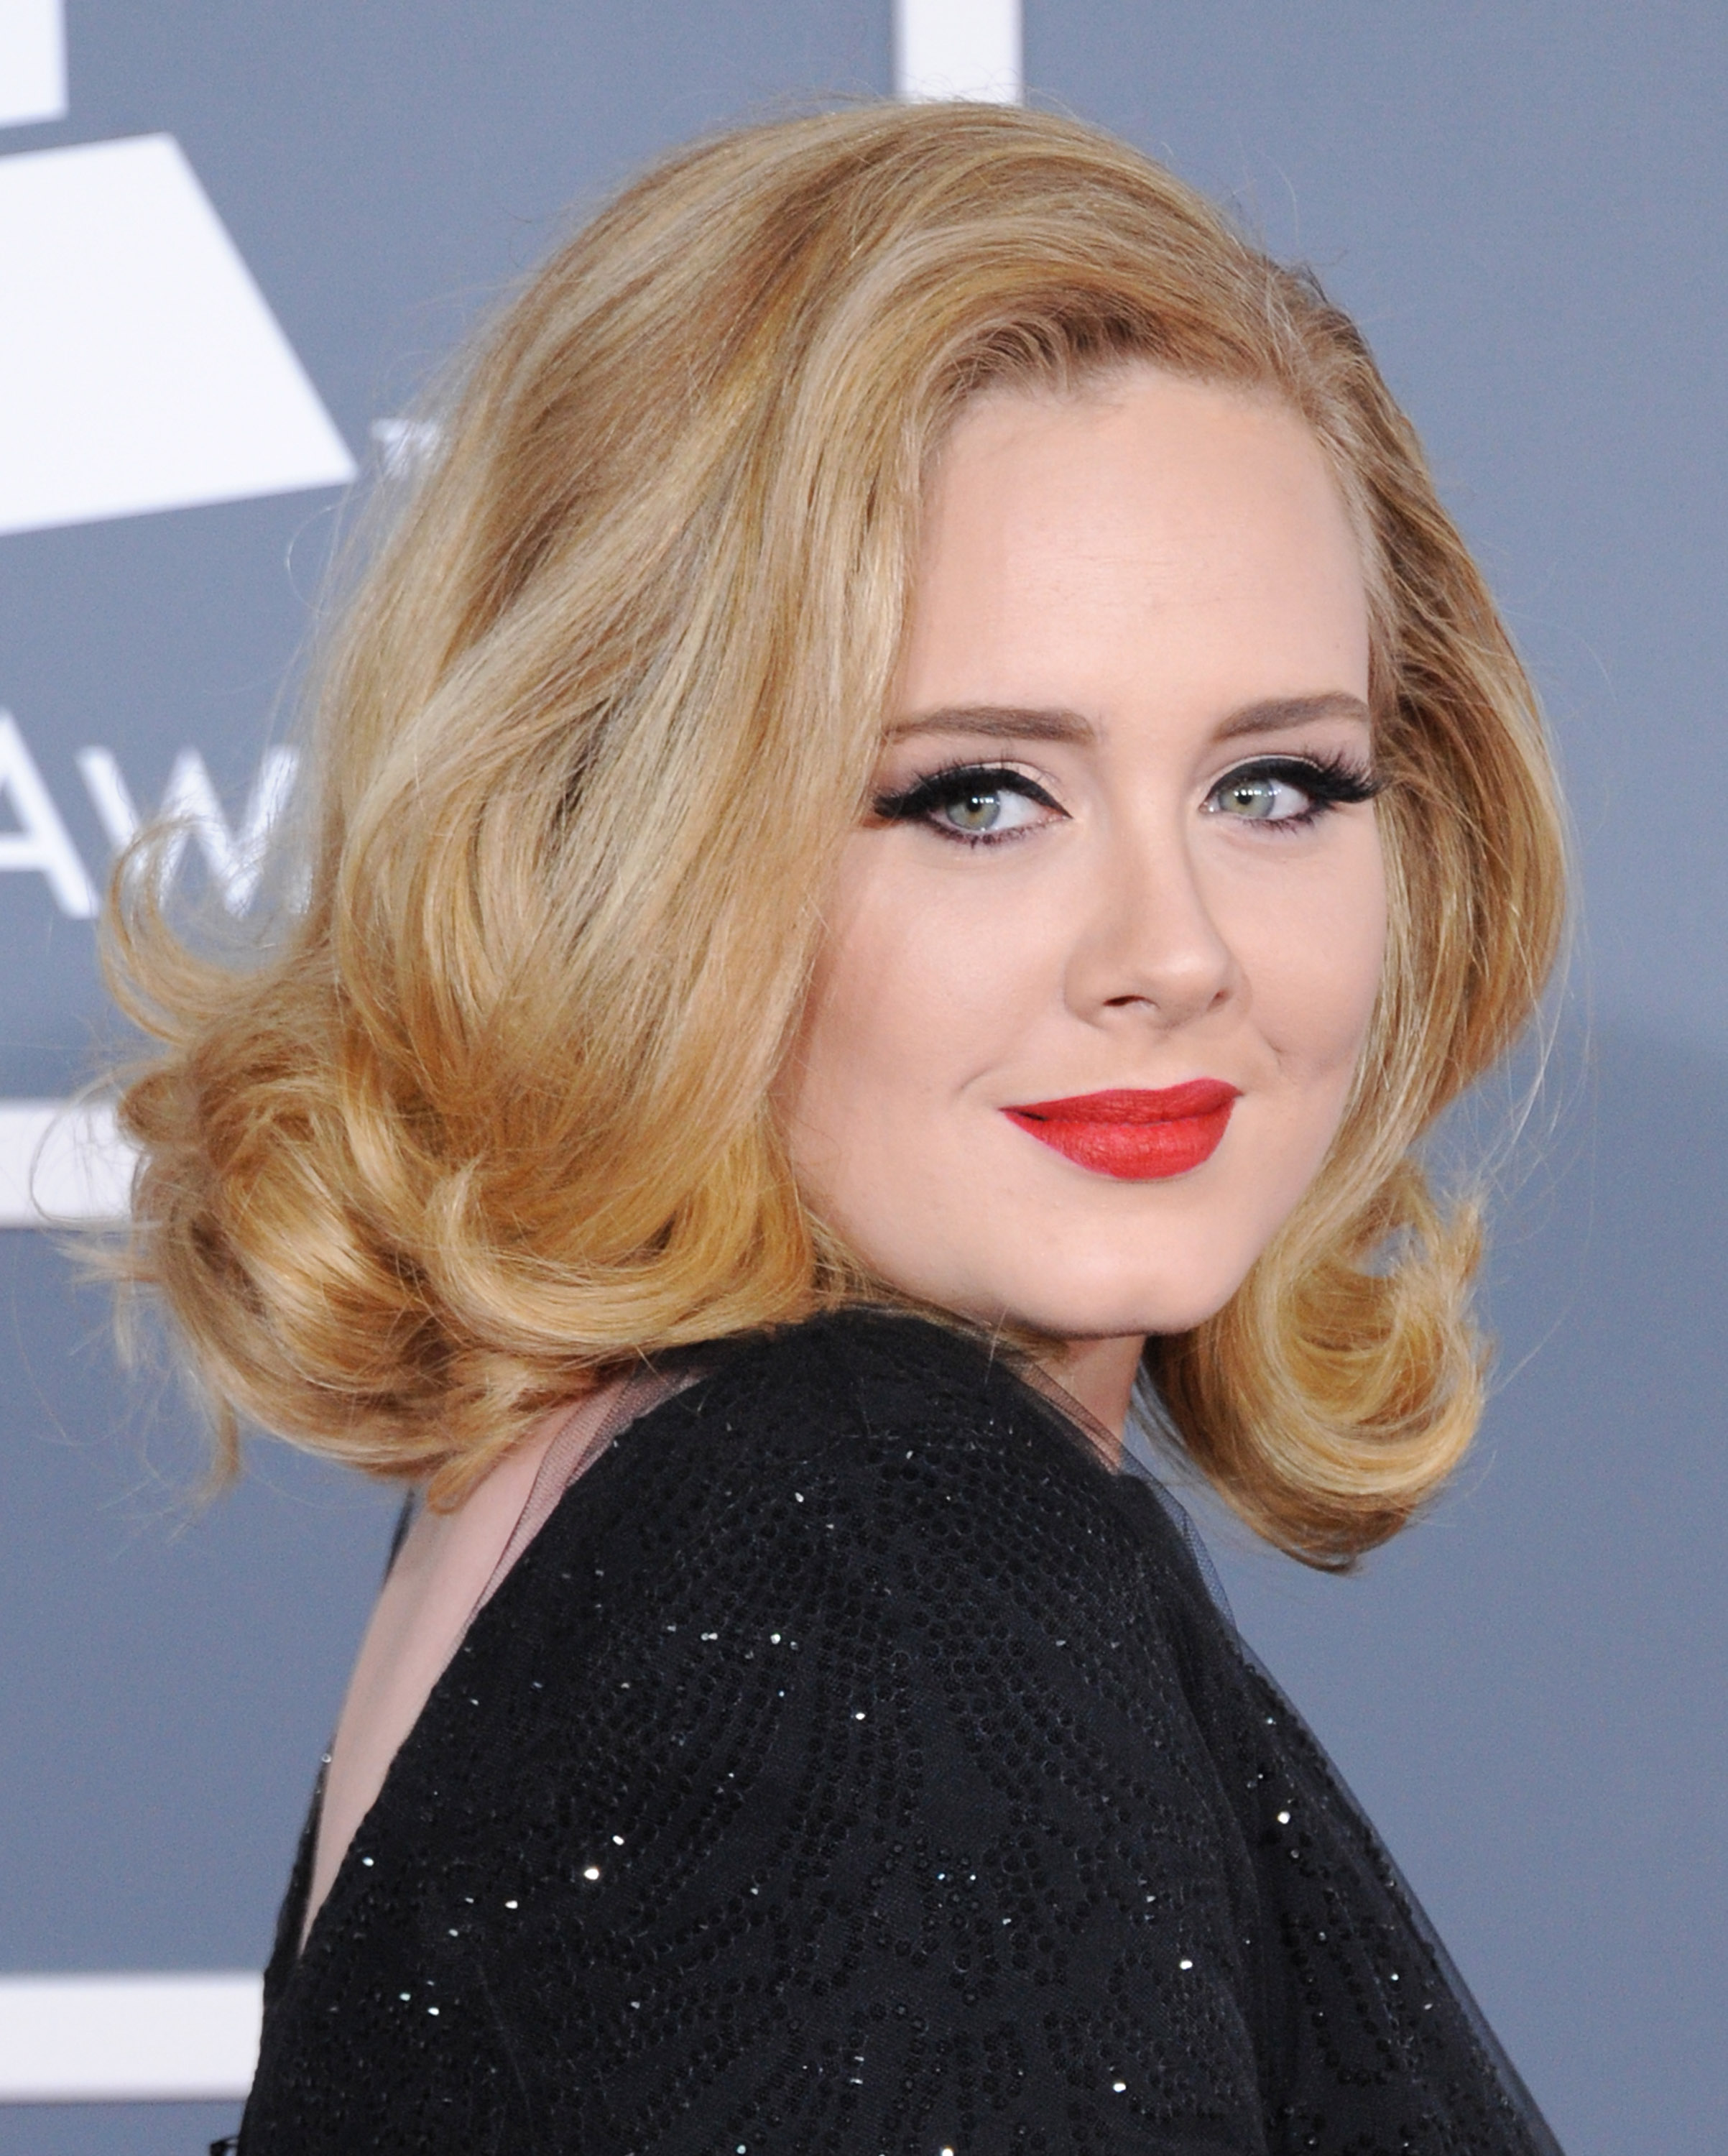 9 Specific Medium Length Hairstyles For Round Face Women 2018